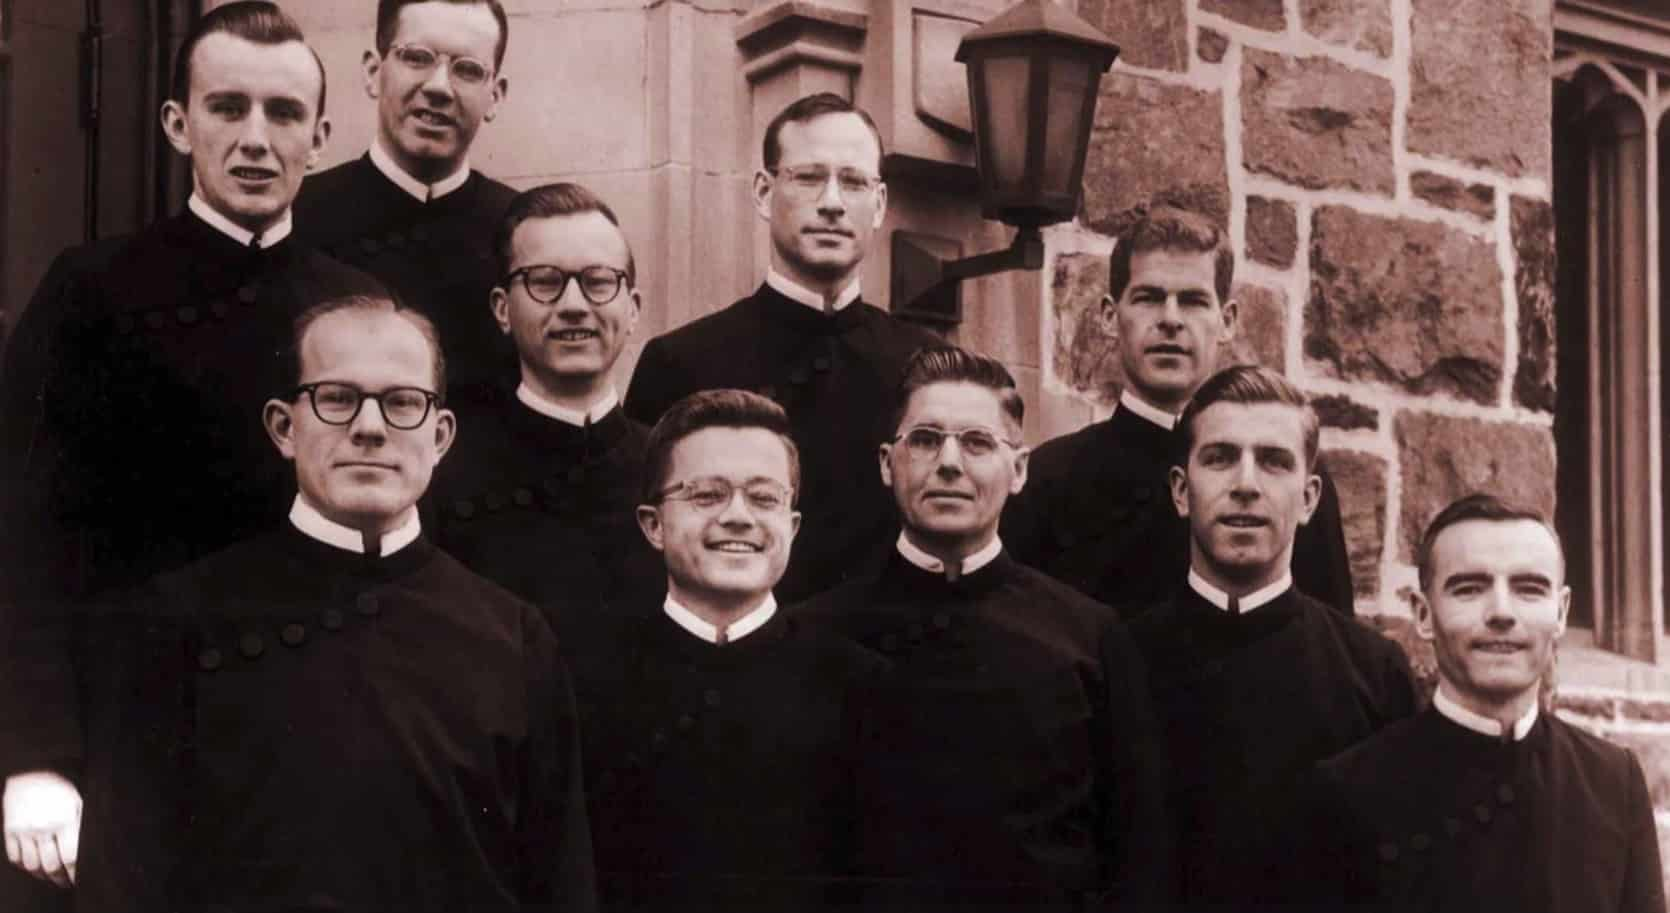 pietrucha_stransky_and_mckiernan_as_seminarians